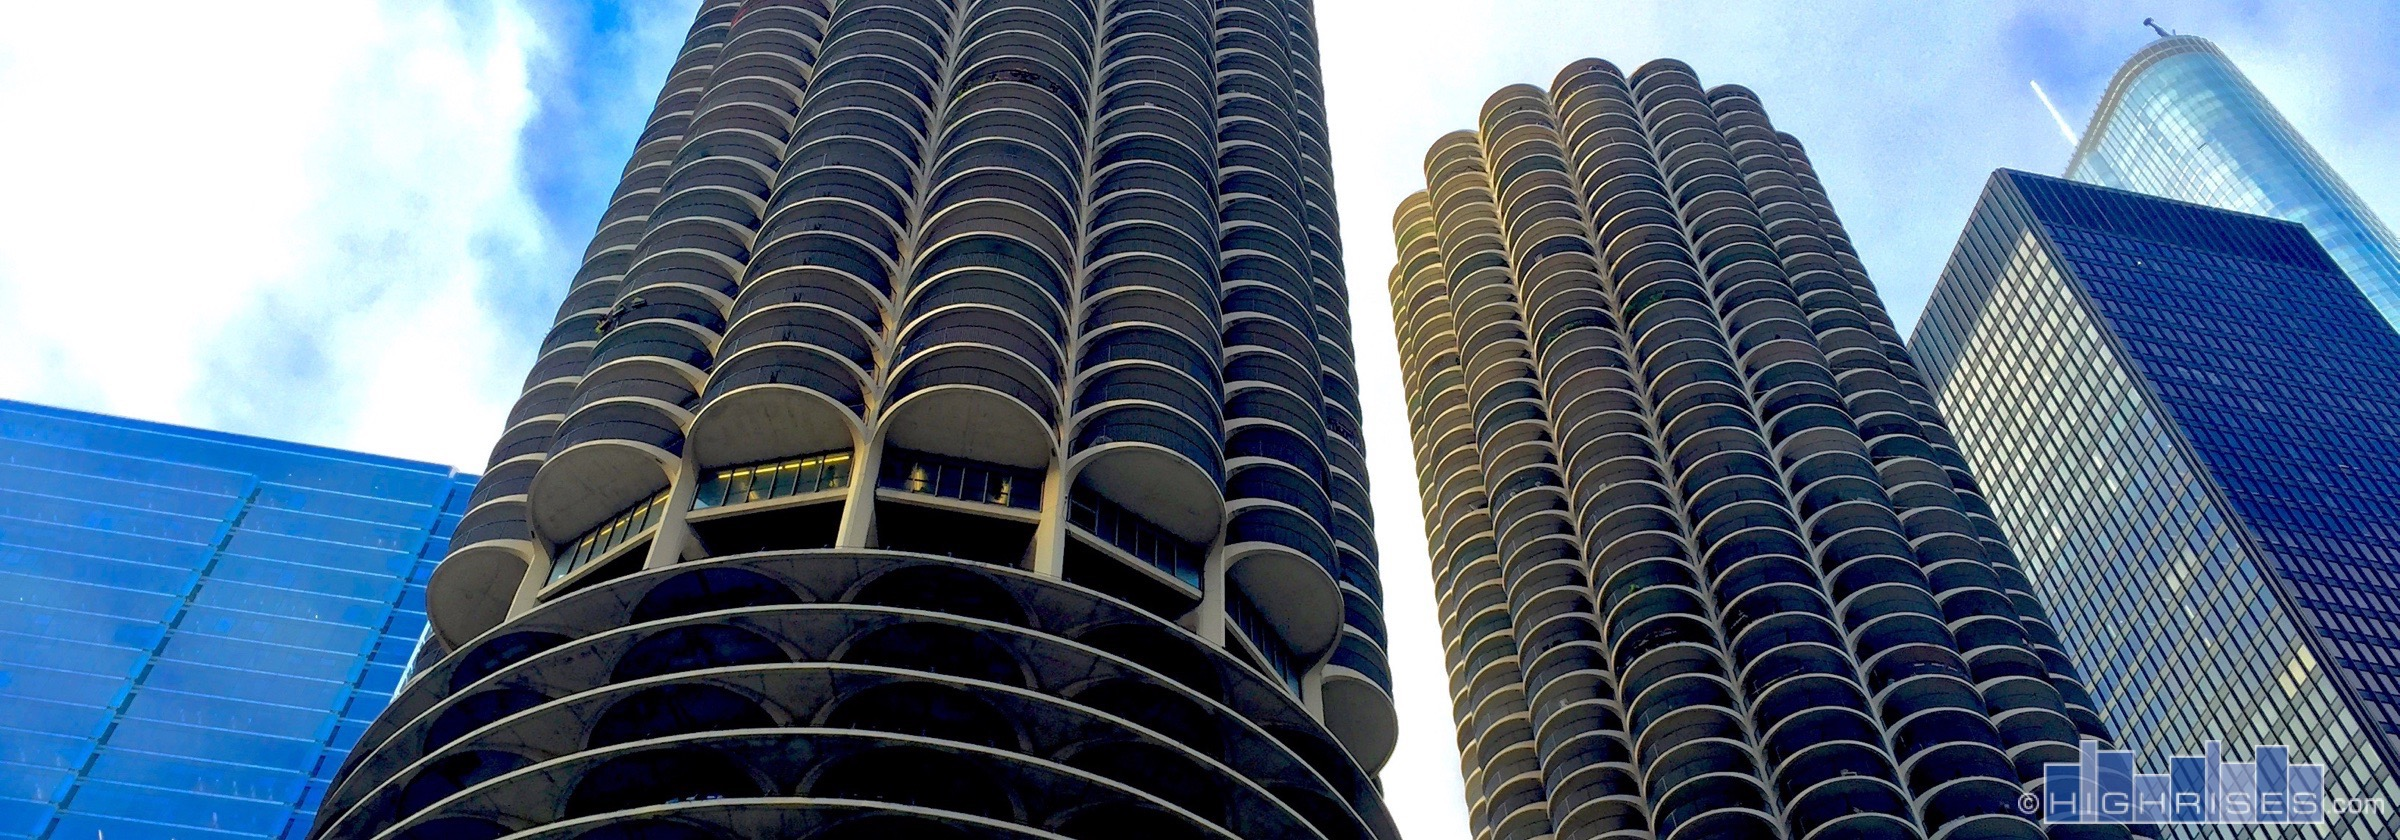 marina city condos of chicago il 300 n state st